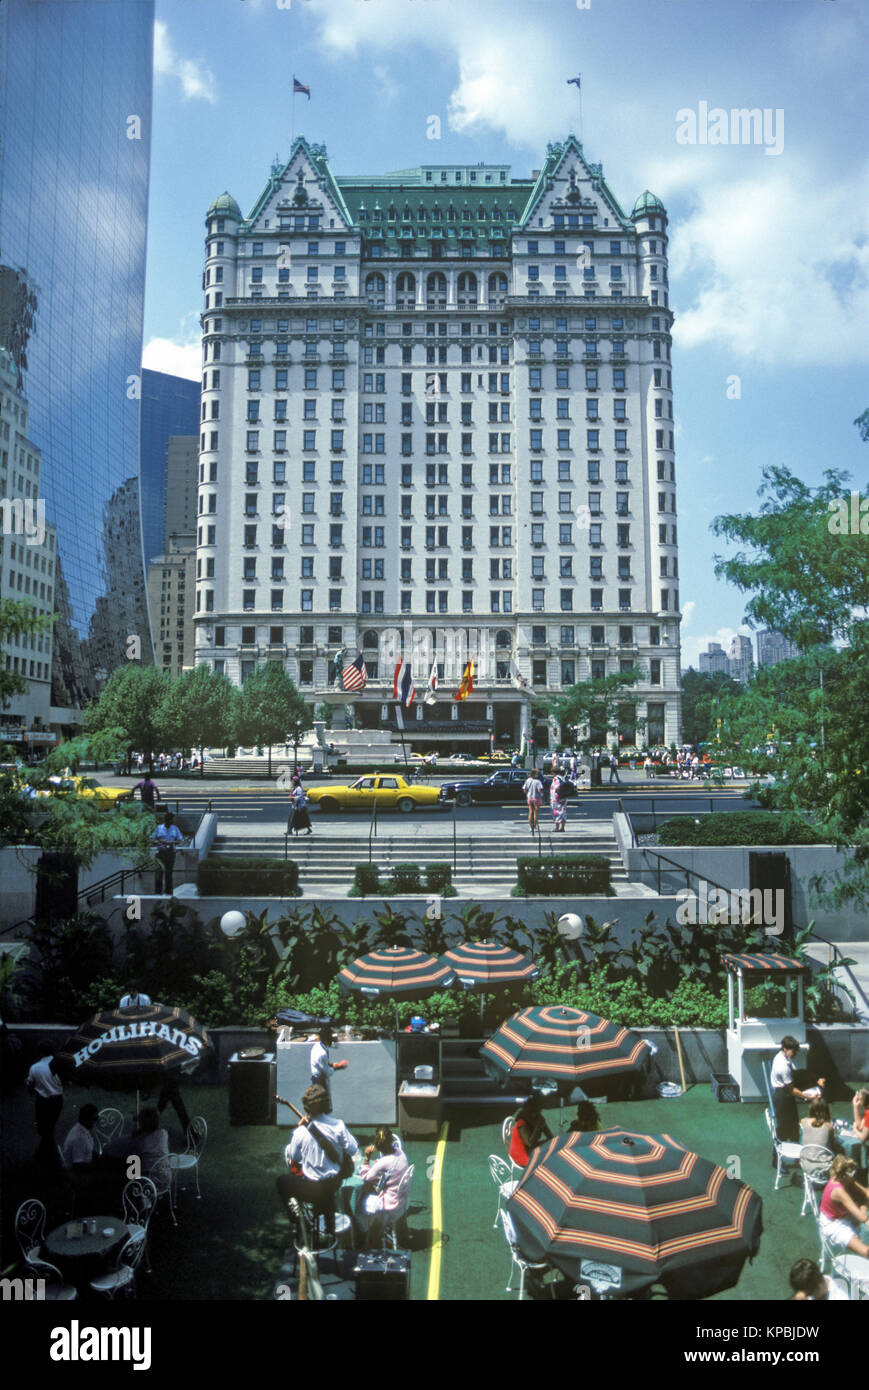 1987 HISTORICAL GENERAL MOTORS TOWER CAFE PLAZA HOTEL FIFTH AVENUE MANHATTAN NEW YORK CITY USA - Stock Image